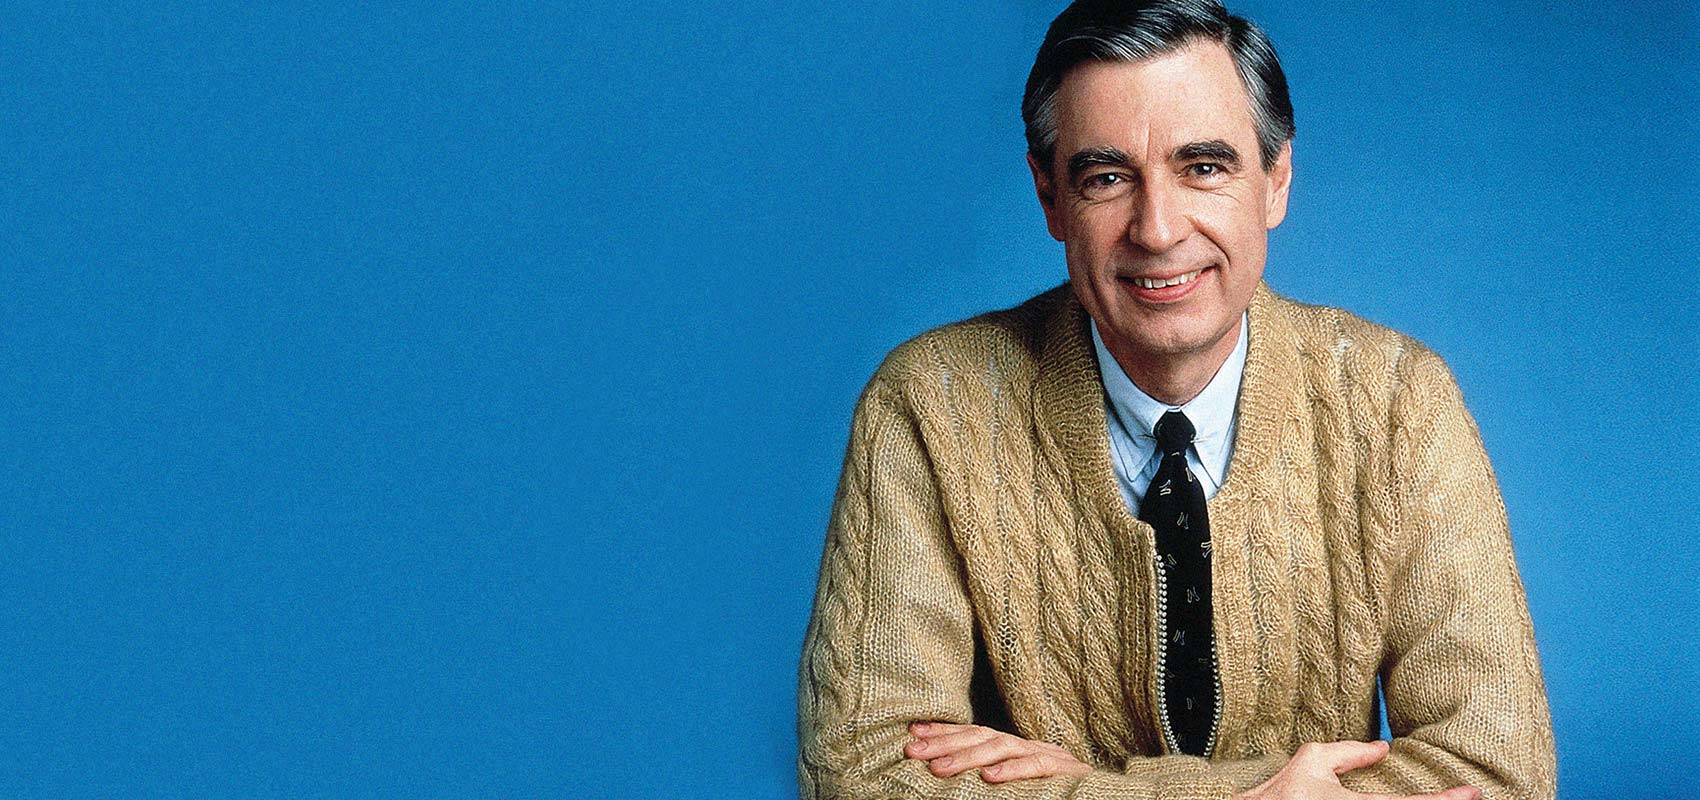 The Messages Mister Rogers Neighborhood